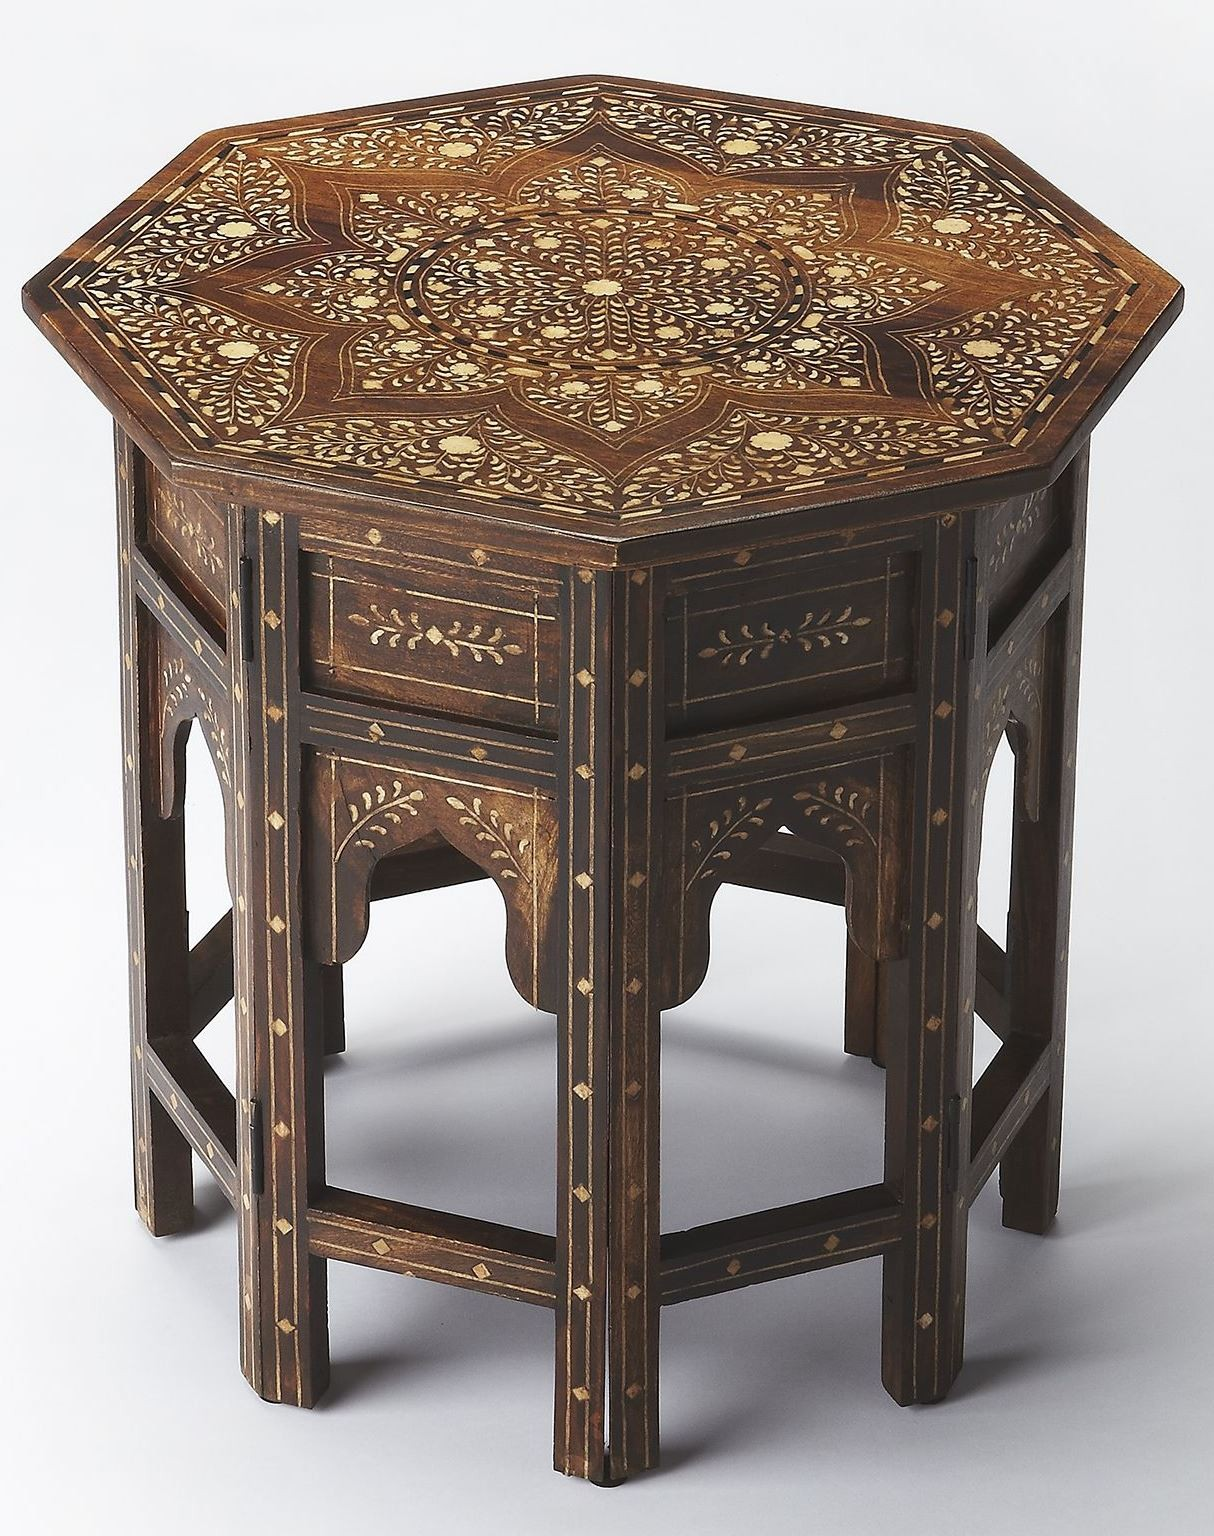 bone inlay wood accent table from butler cute side tables grey rattan cool bar gold home accessories inch round tablecloth silver sparkle lamp pub and bistro sets entryway dresser